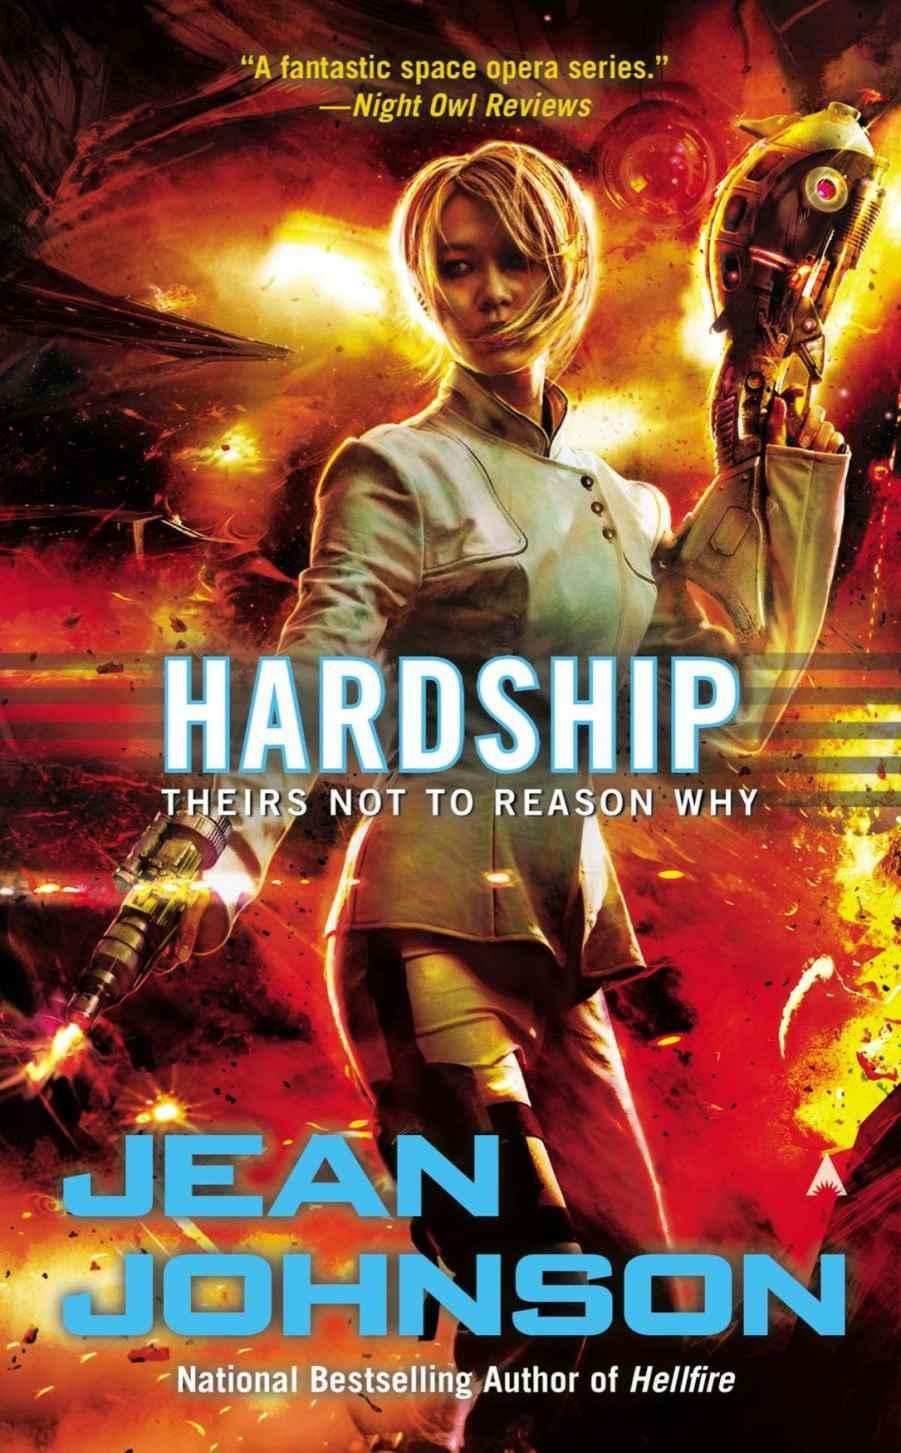 Hardship: An excellent instalment in the series